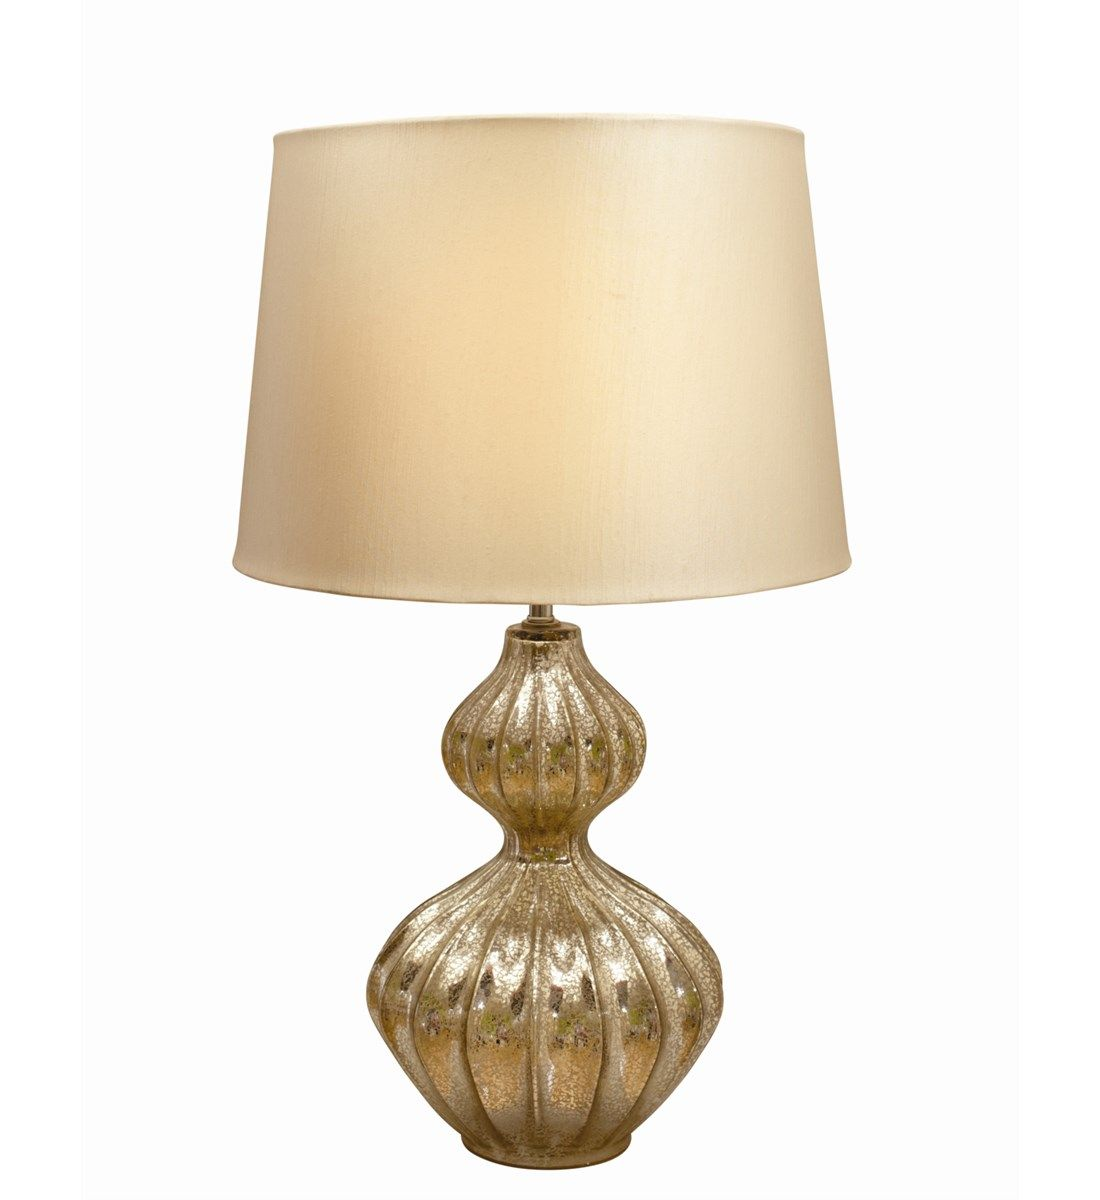 72a2dc9dd392 Treviso Pale Gold Table Lamp Mottled effect glass table lamp base with a  slubbed faux silk lampshade.